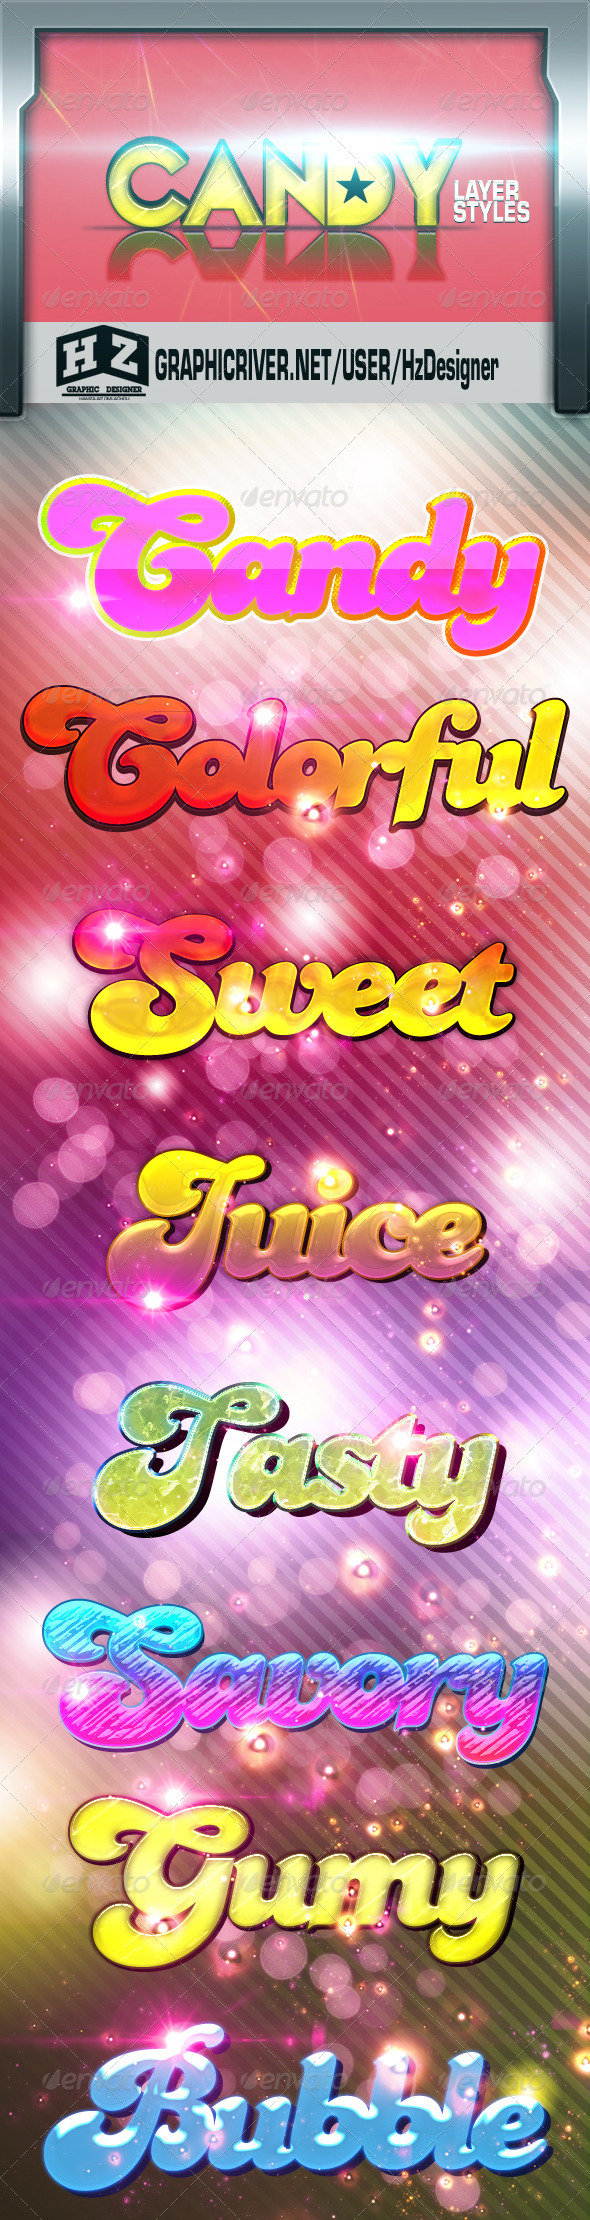 GraphicRiver Candy styles 3442414